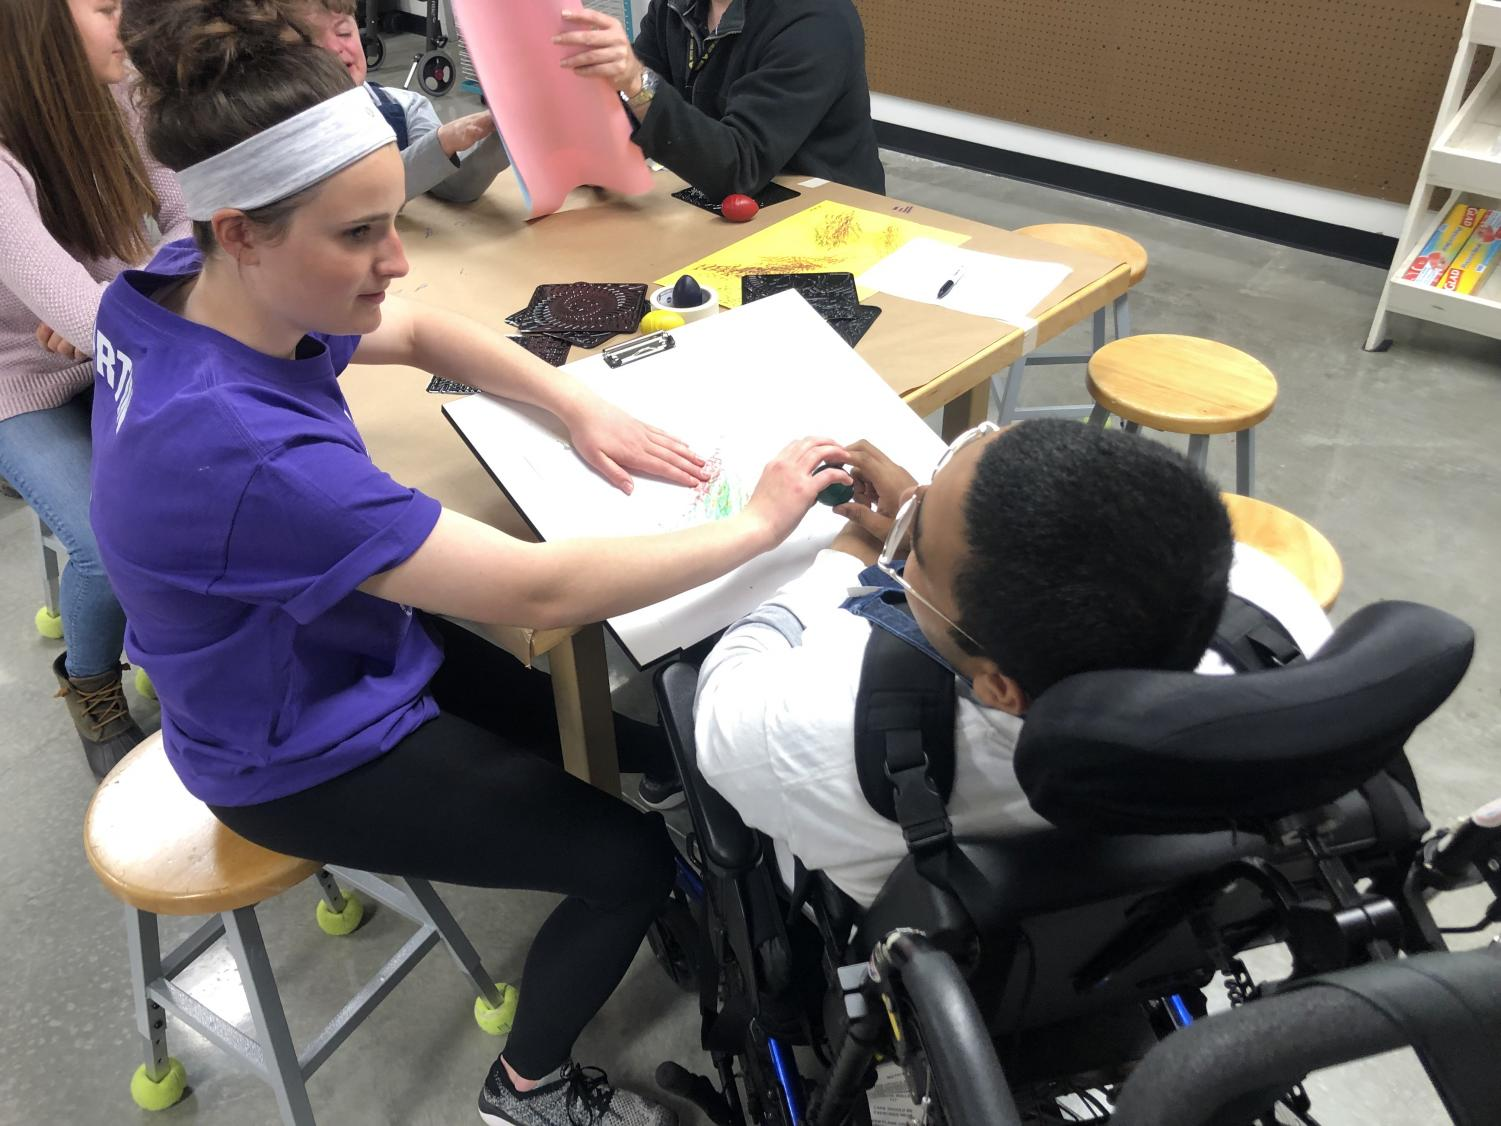 Students work on an art piece during a trial of the adaptive art class